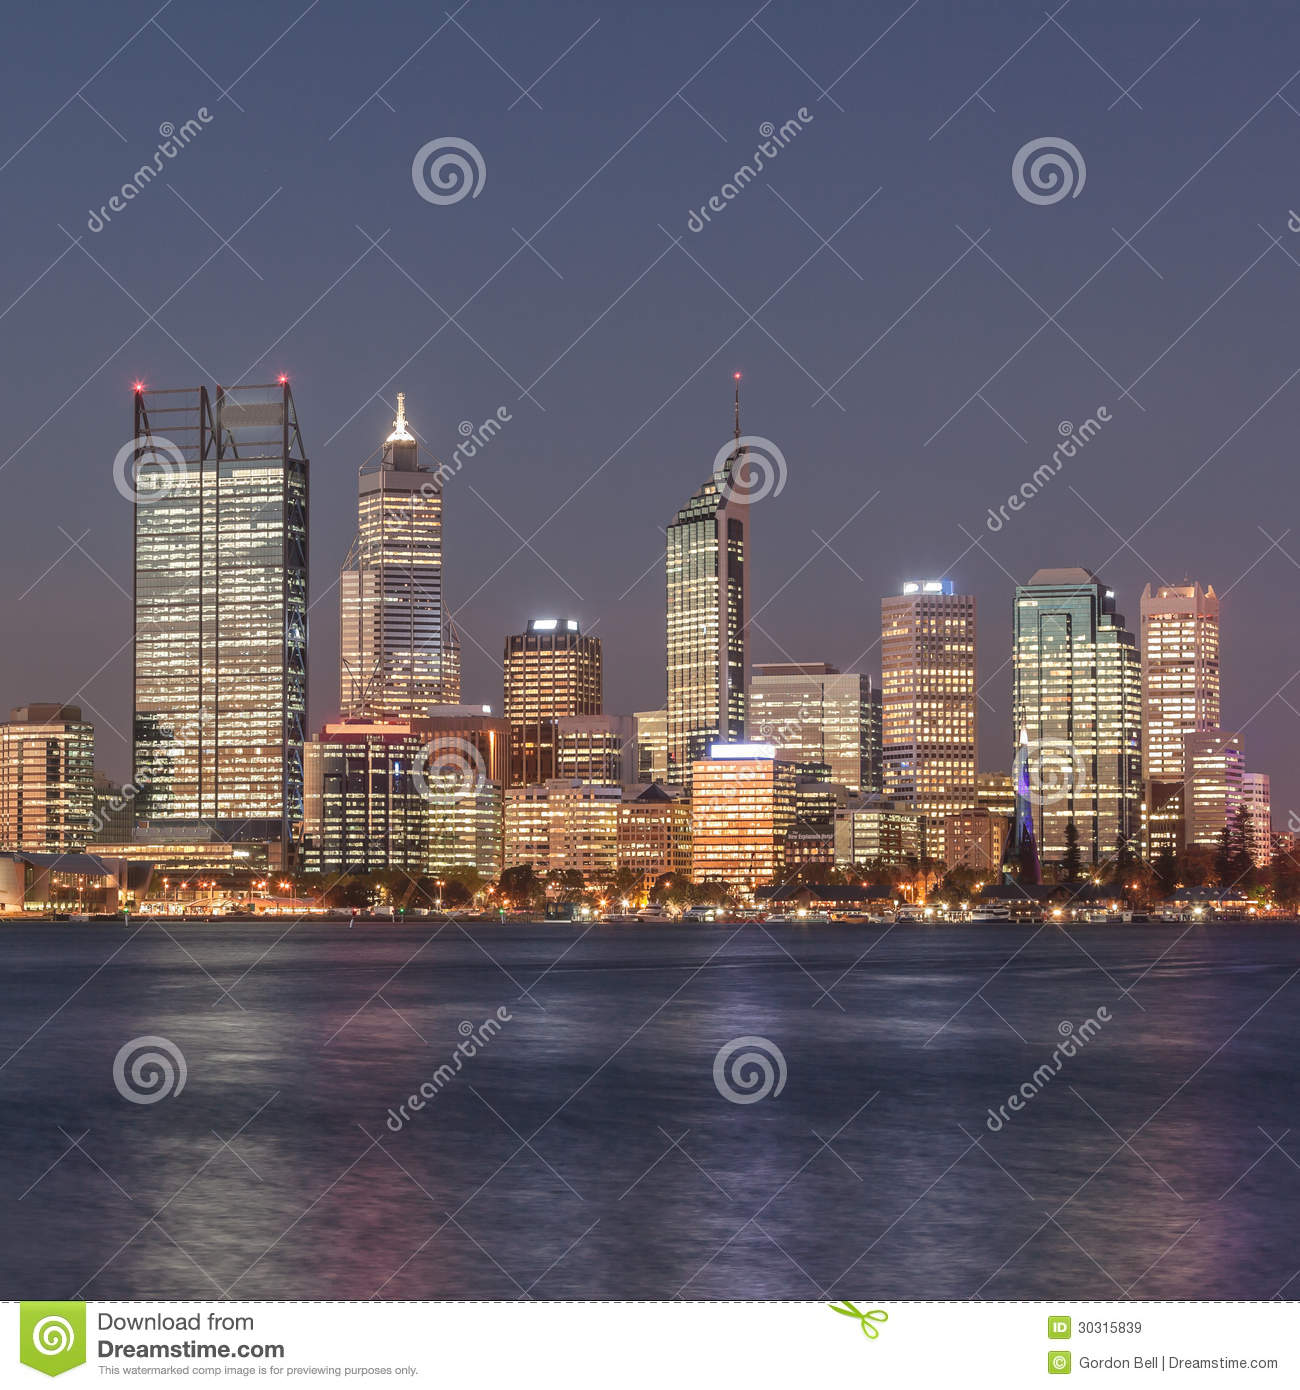 perth in western australia royalty free stock images. Black Bedroom Furniture Sets. Home Design Ideas